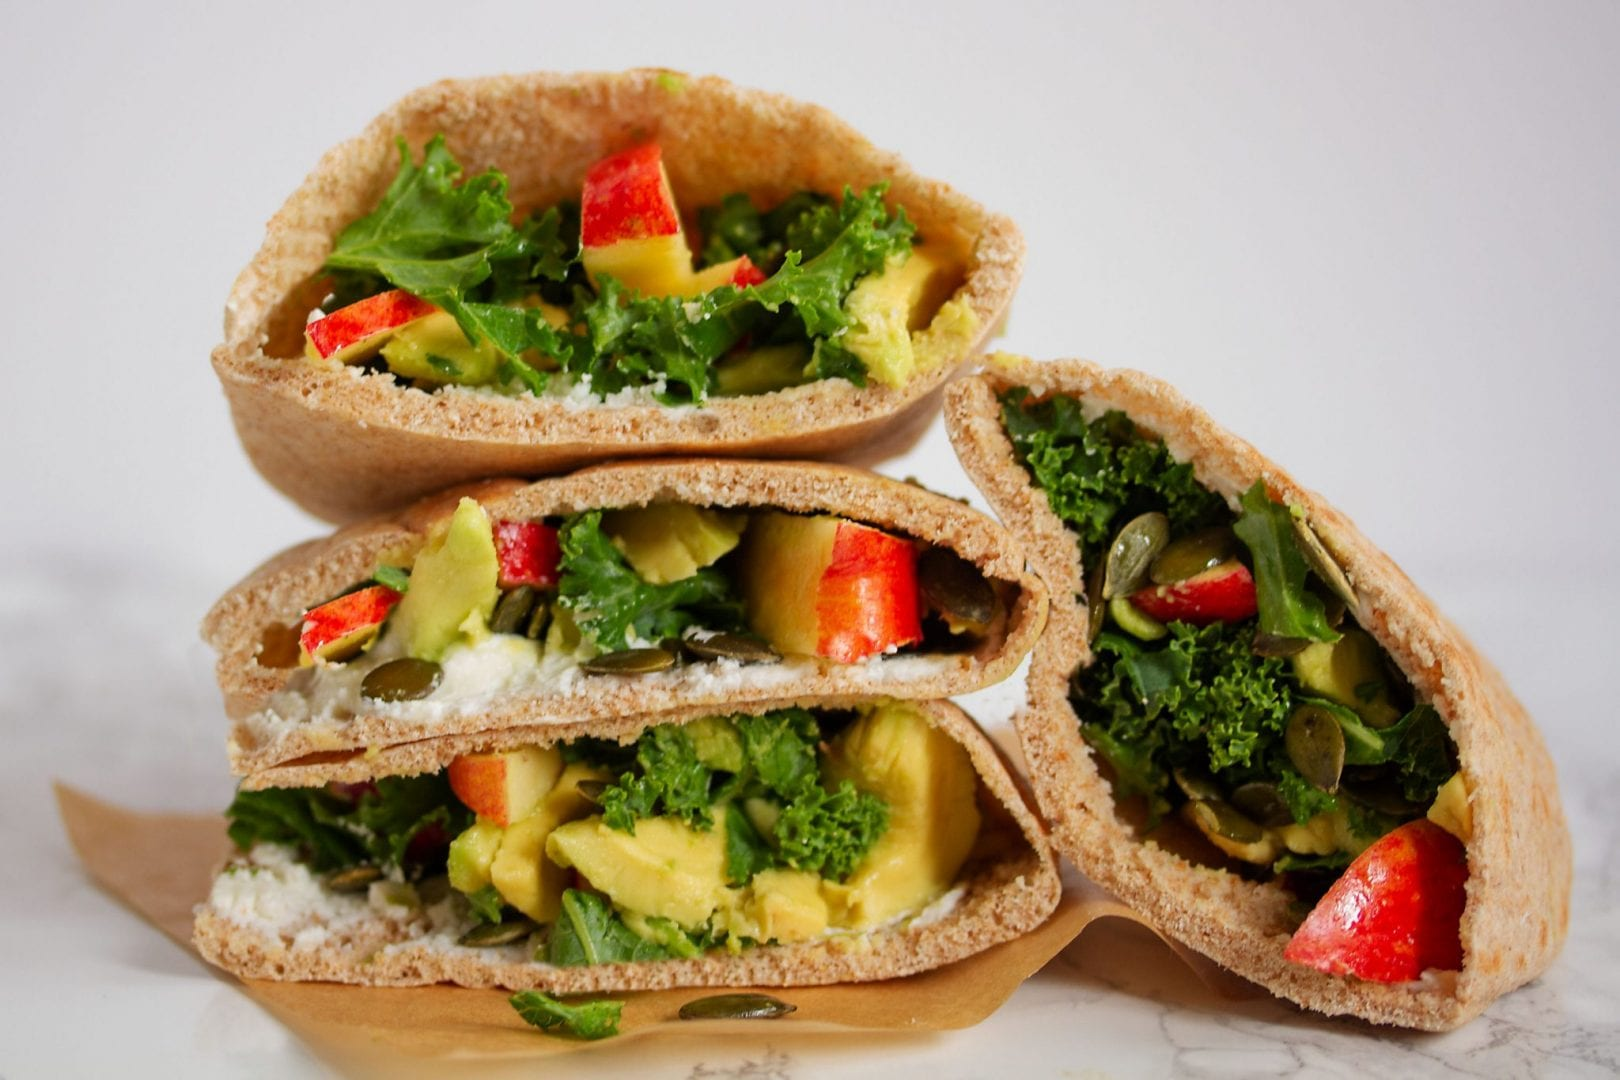 Lunch box ideas - lunch box sandwich - kale and apple pitta sandwich